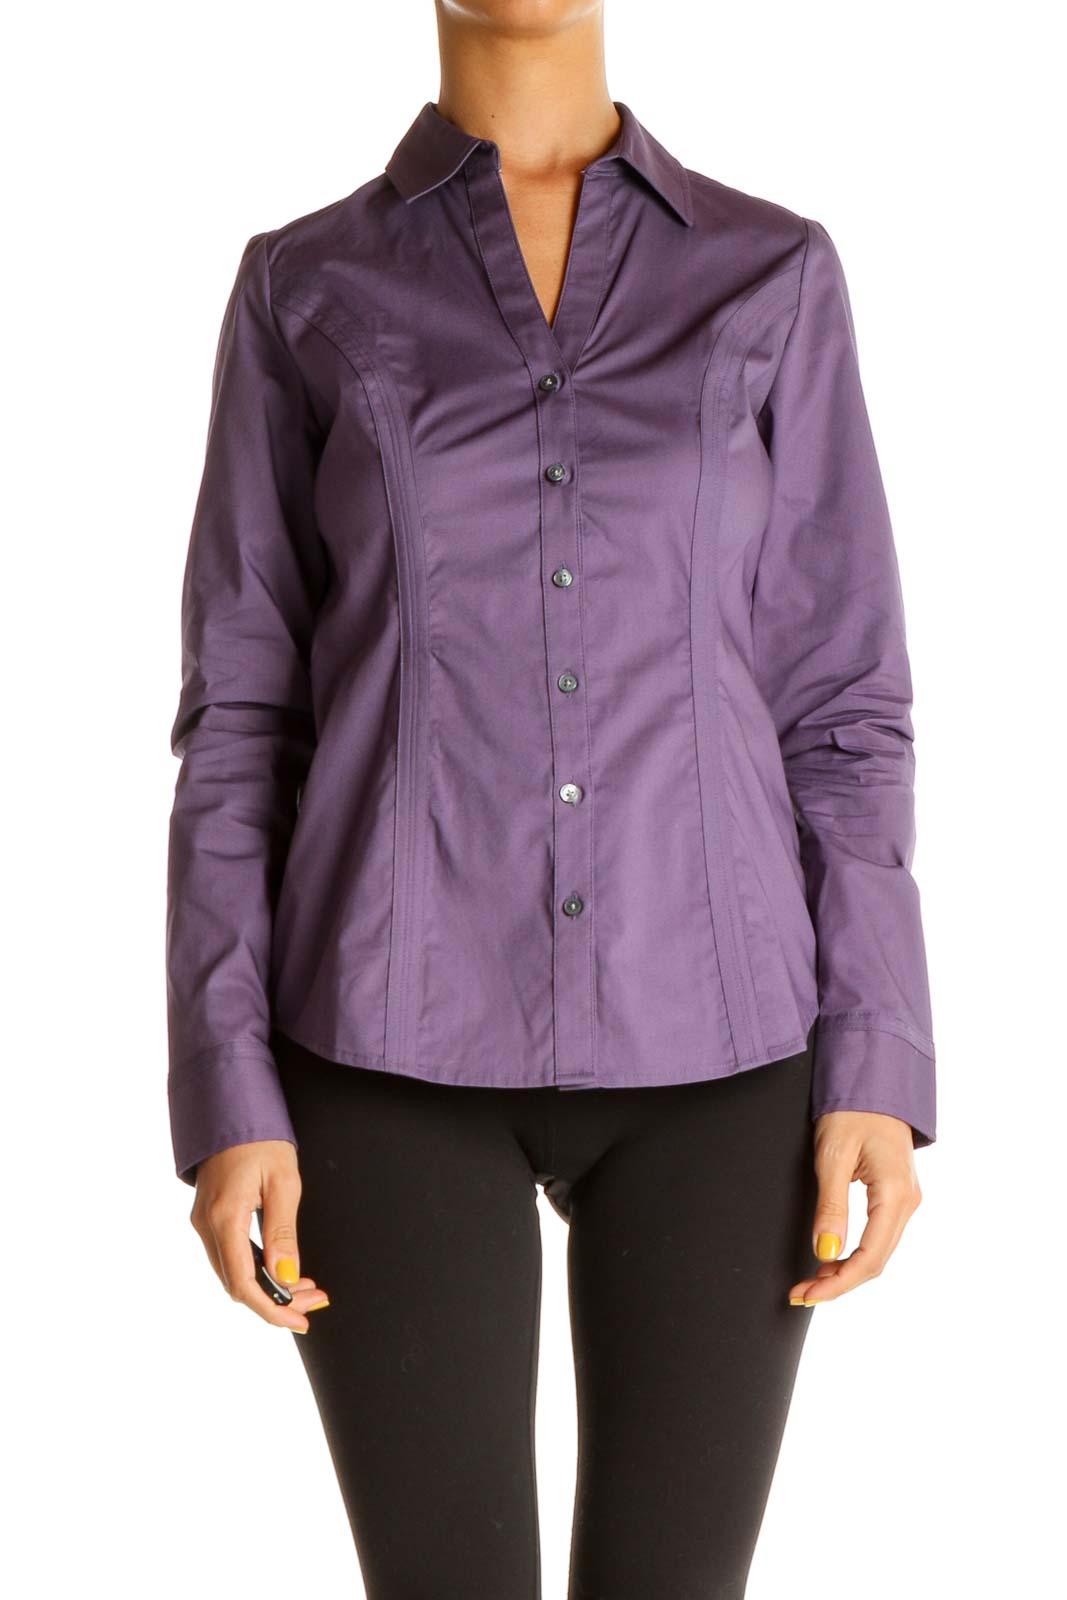 Purple Solid Work Shirt Front